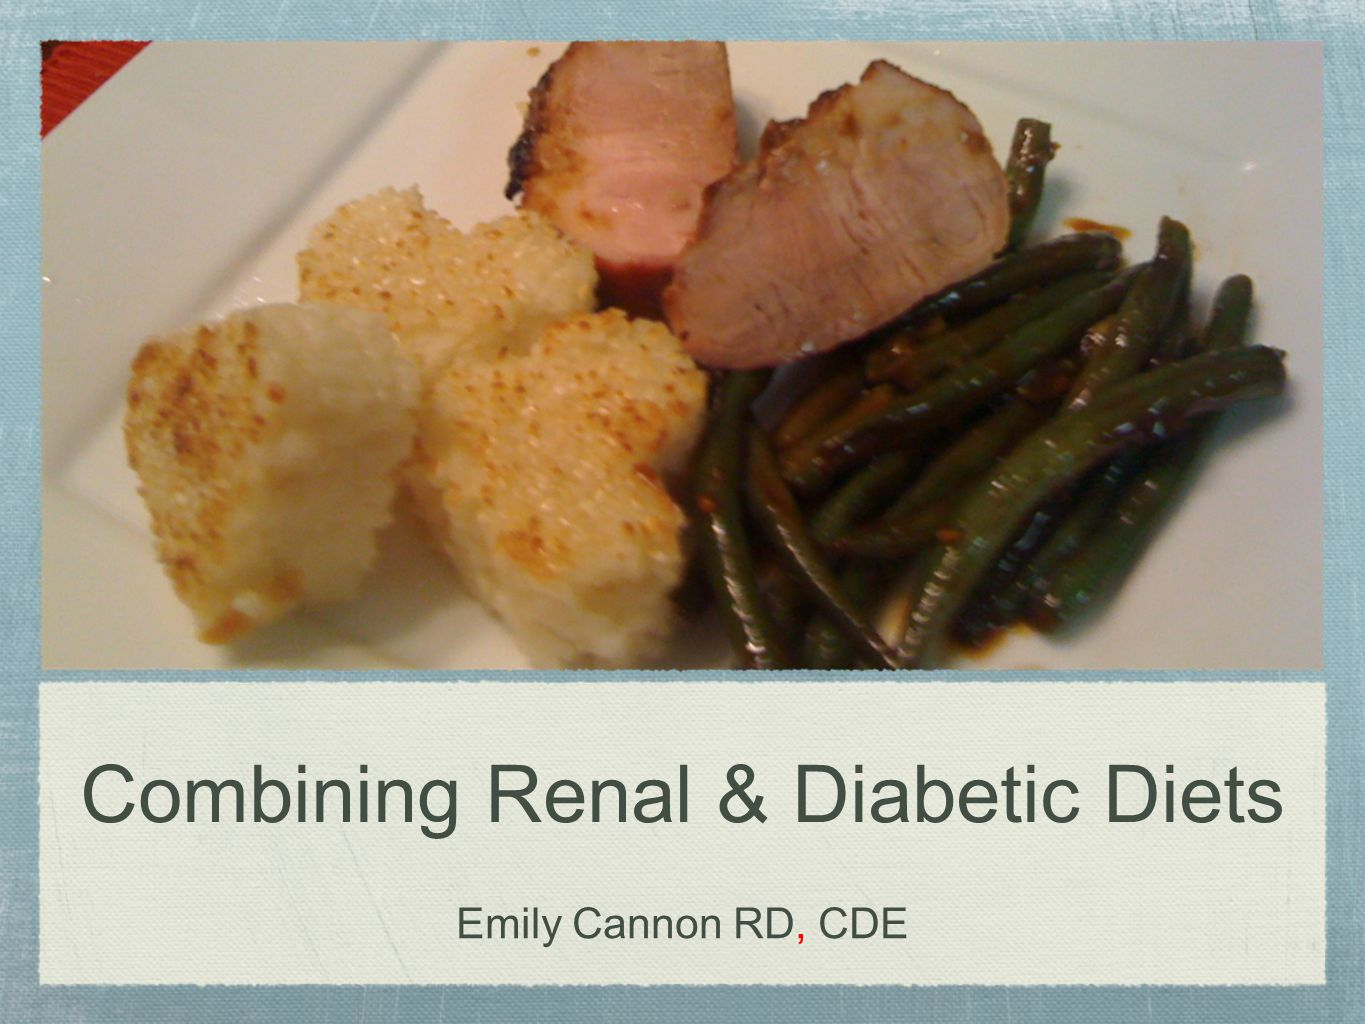 Combining Renal & Diabetic Diets Emily Cannon RD, CDE